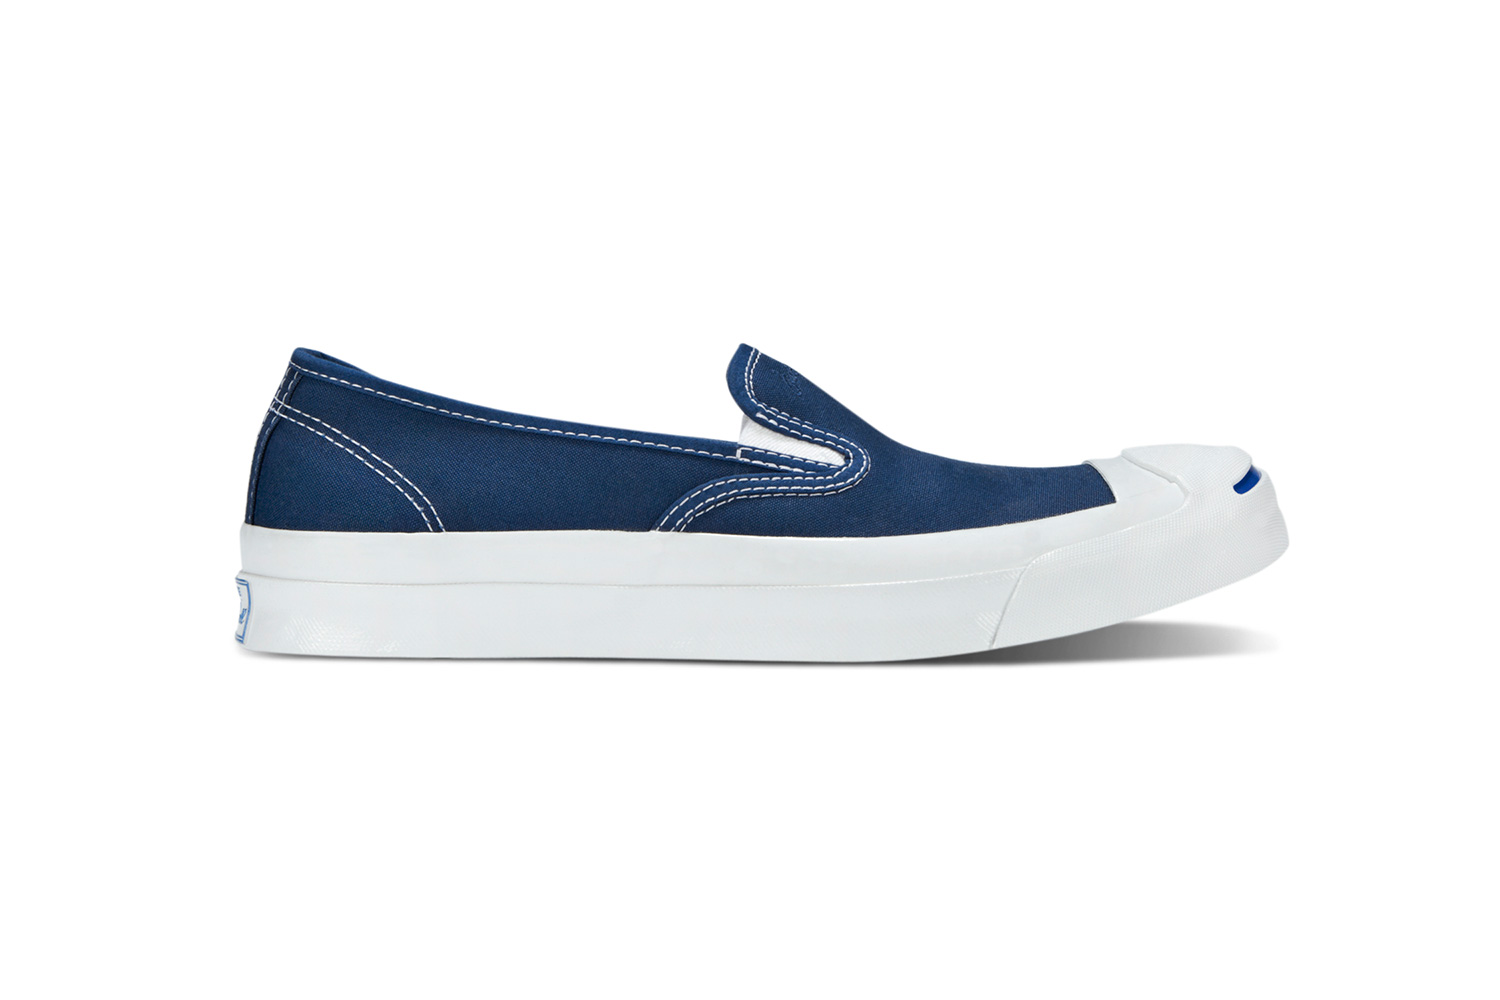 Converse Jack Purcell Signature Slip-Ons